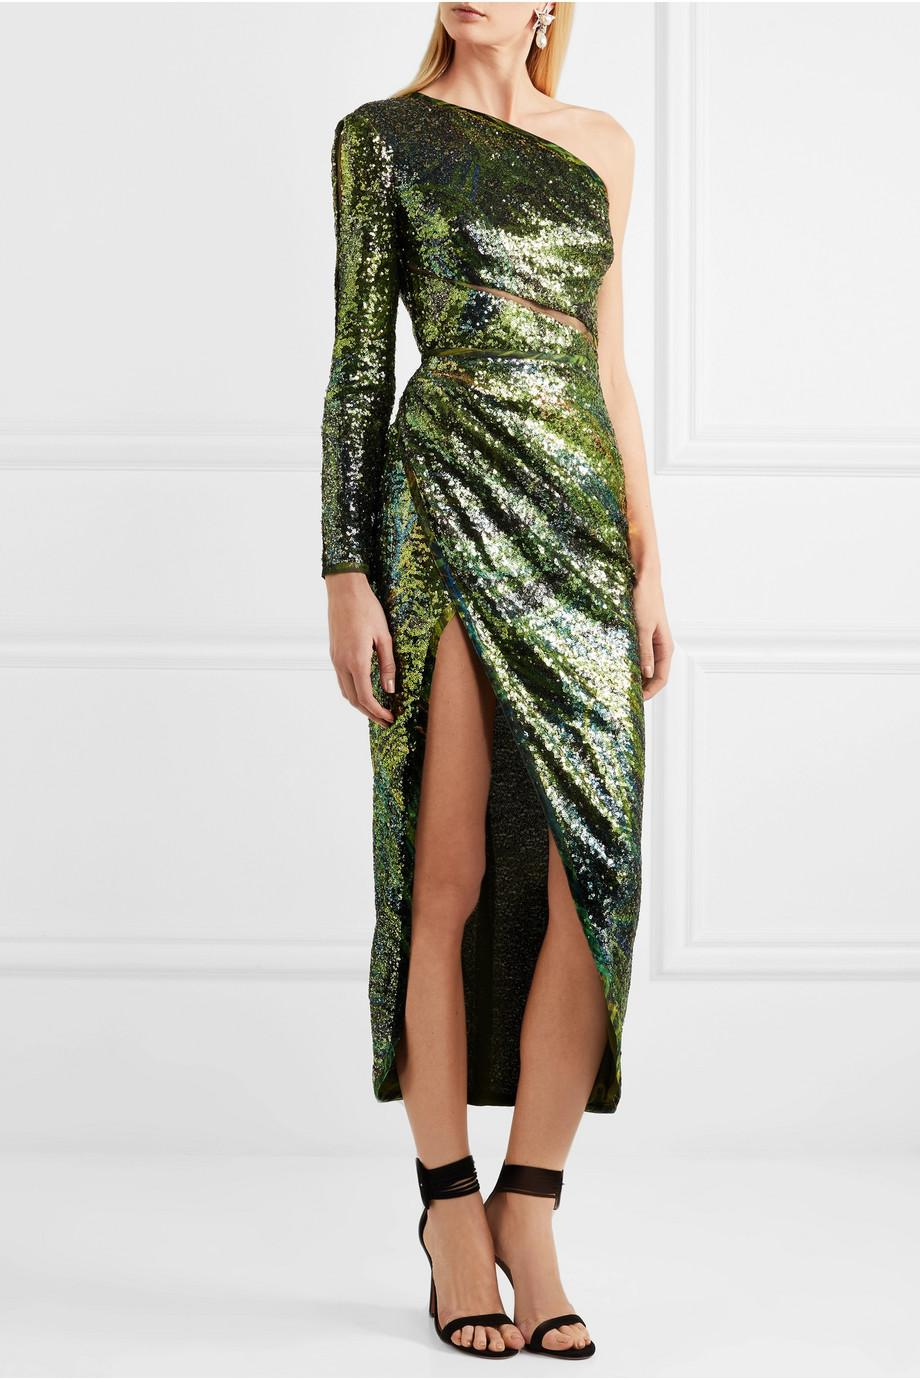 One-shoulder Sequined Silk-tulle Dress - Green Elie Saab EveGb